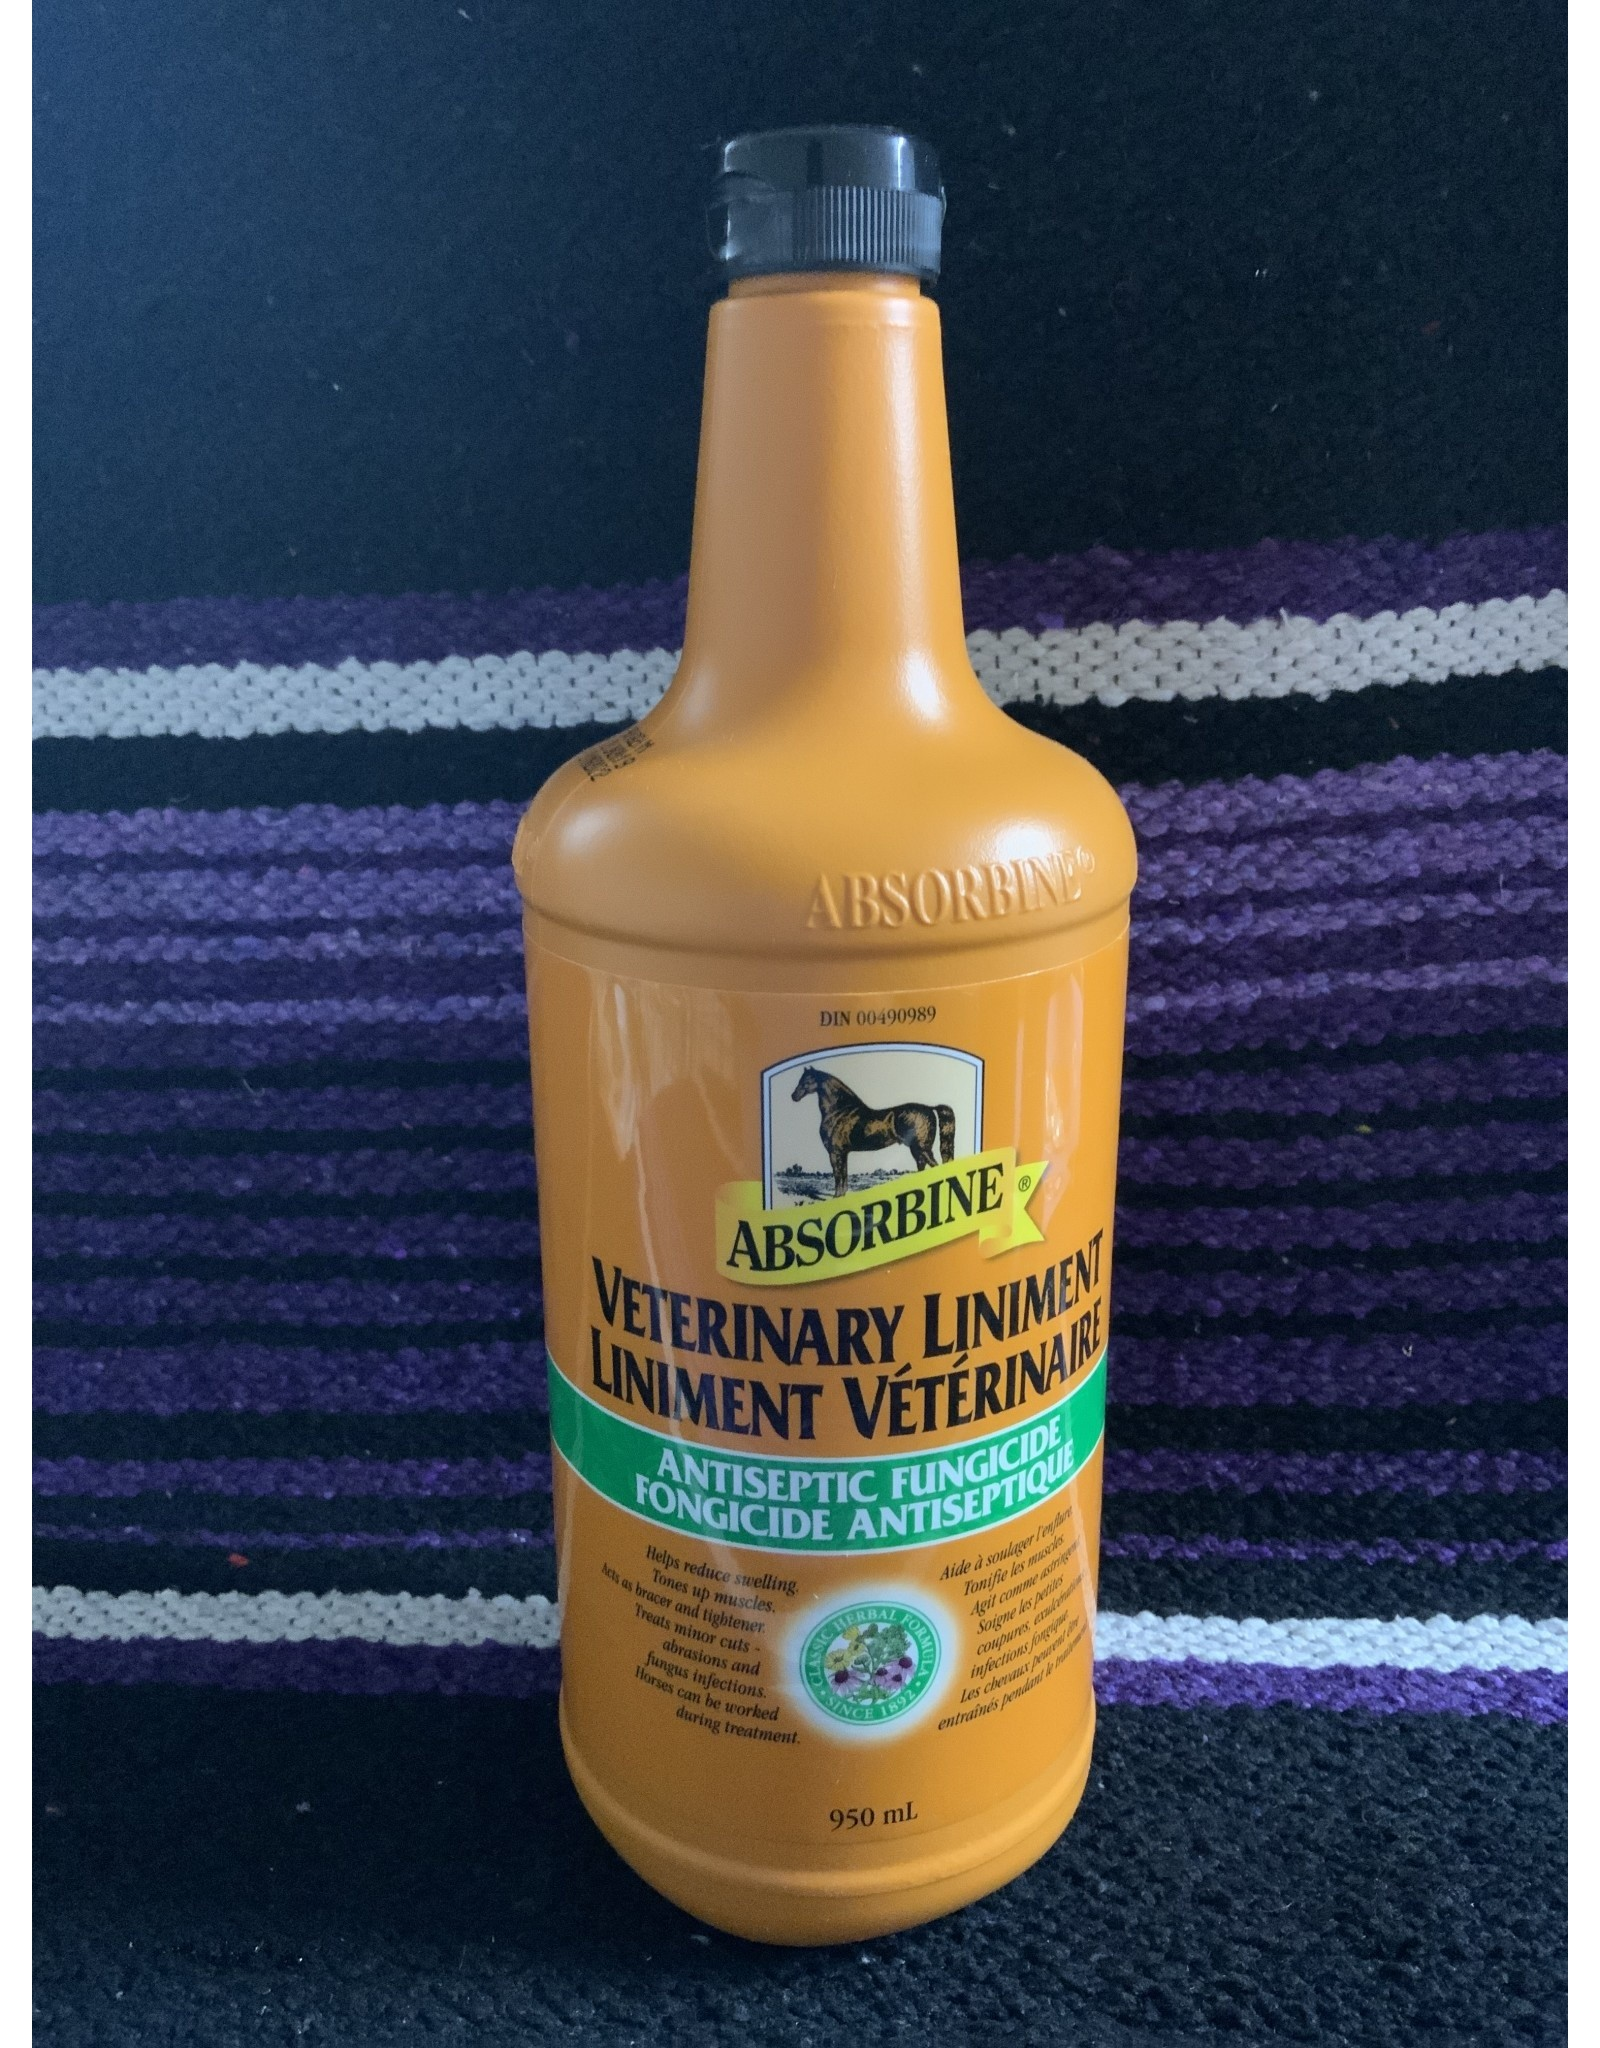 Abs. Vet Liniment 950 ml 001-004